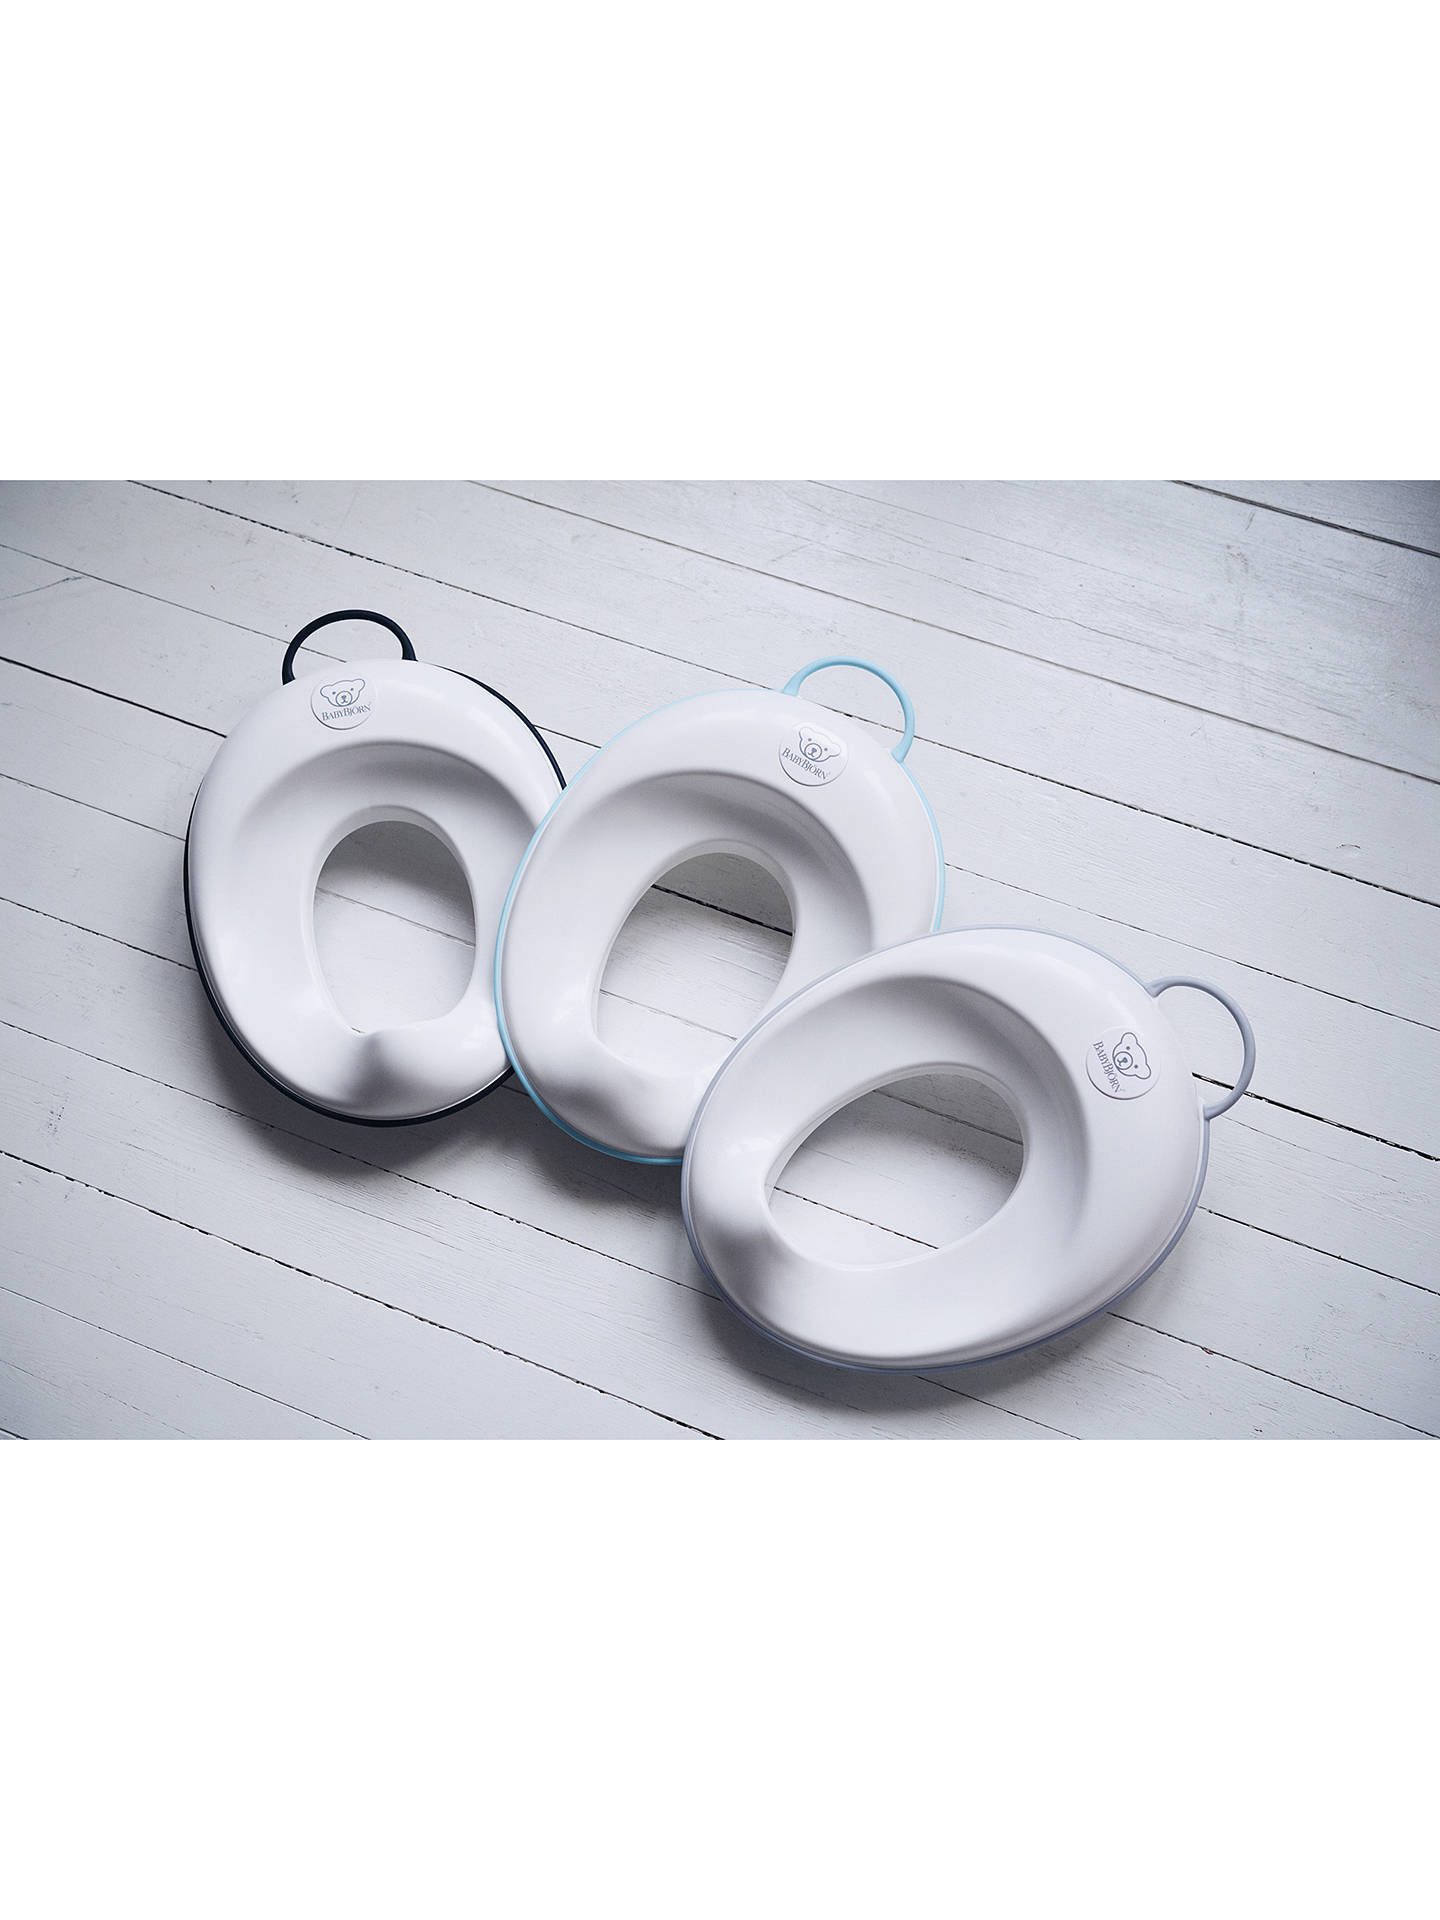 37cb1123a0d ... Buy BabyBjörn Toilet Trainer Seat